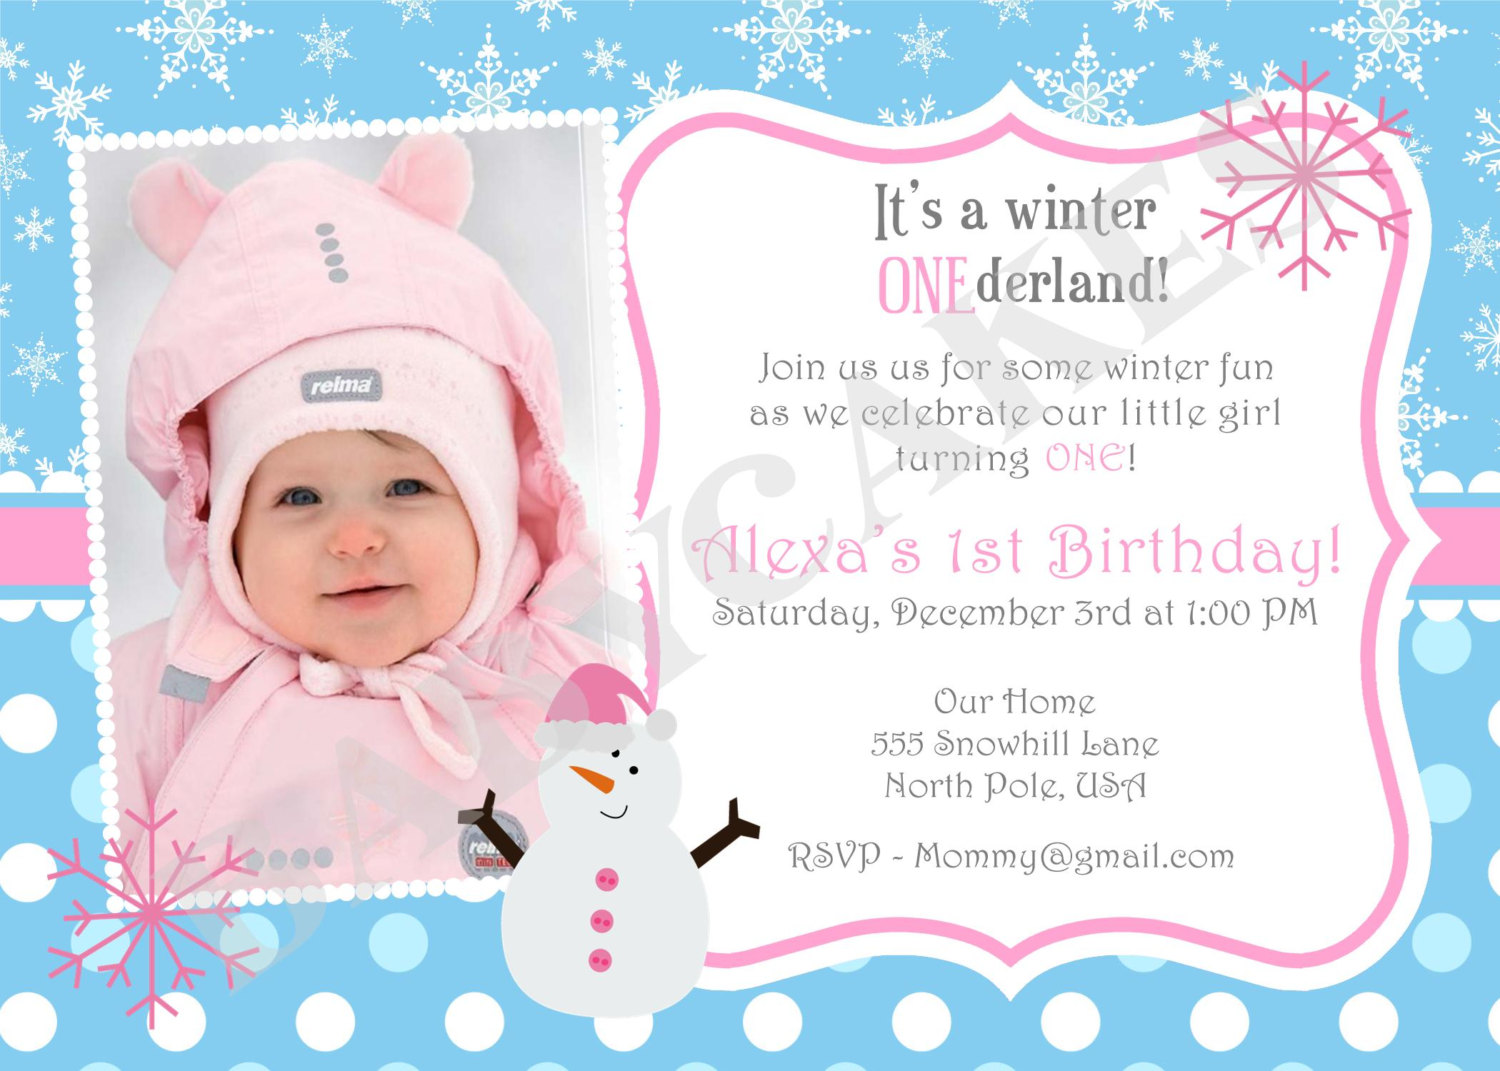 1 birthday invitation templates ; first-birthday-party-invitation-wording-as-attractive-Birthday-invitation-template-designs-for-you-13920161